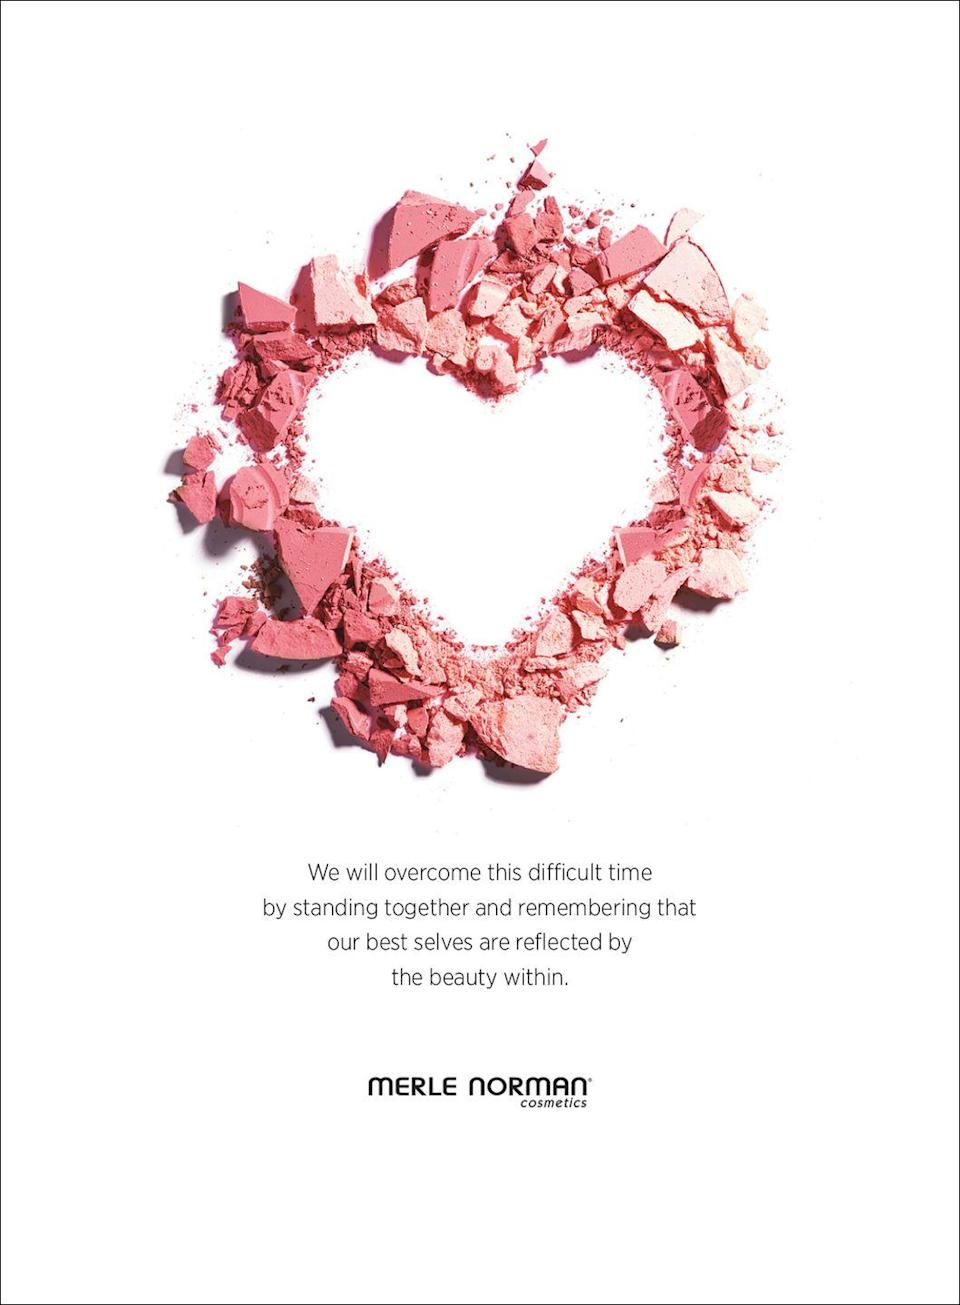 <p>We will overcome this difficult time by standing together and remembering that our best selves are reflected by the beauty within. </p>